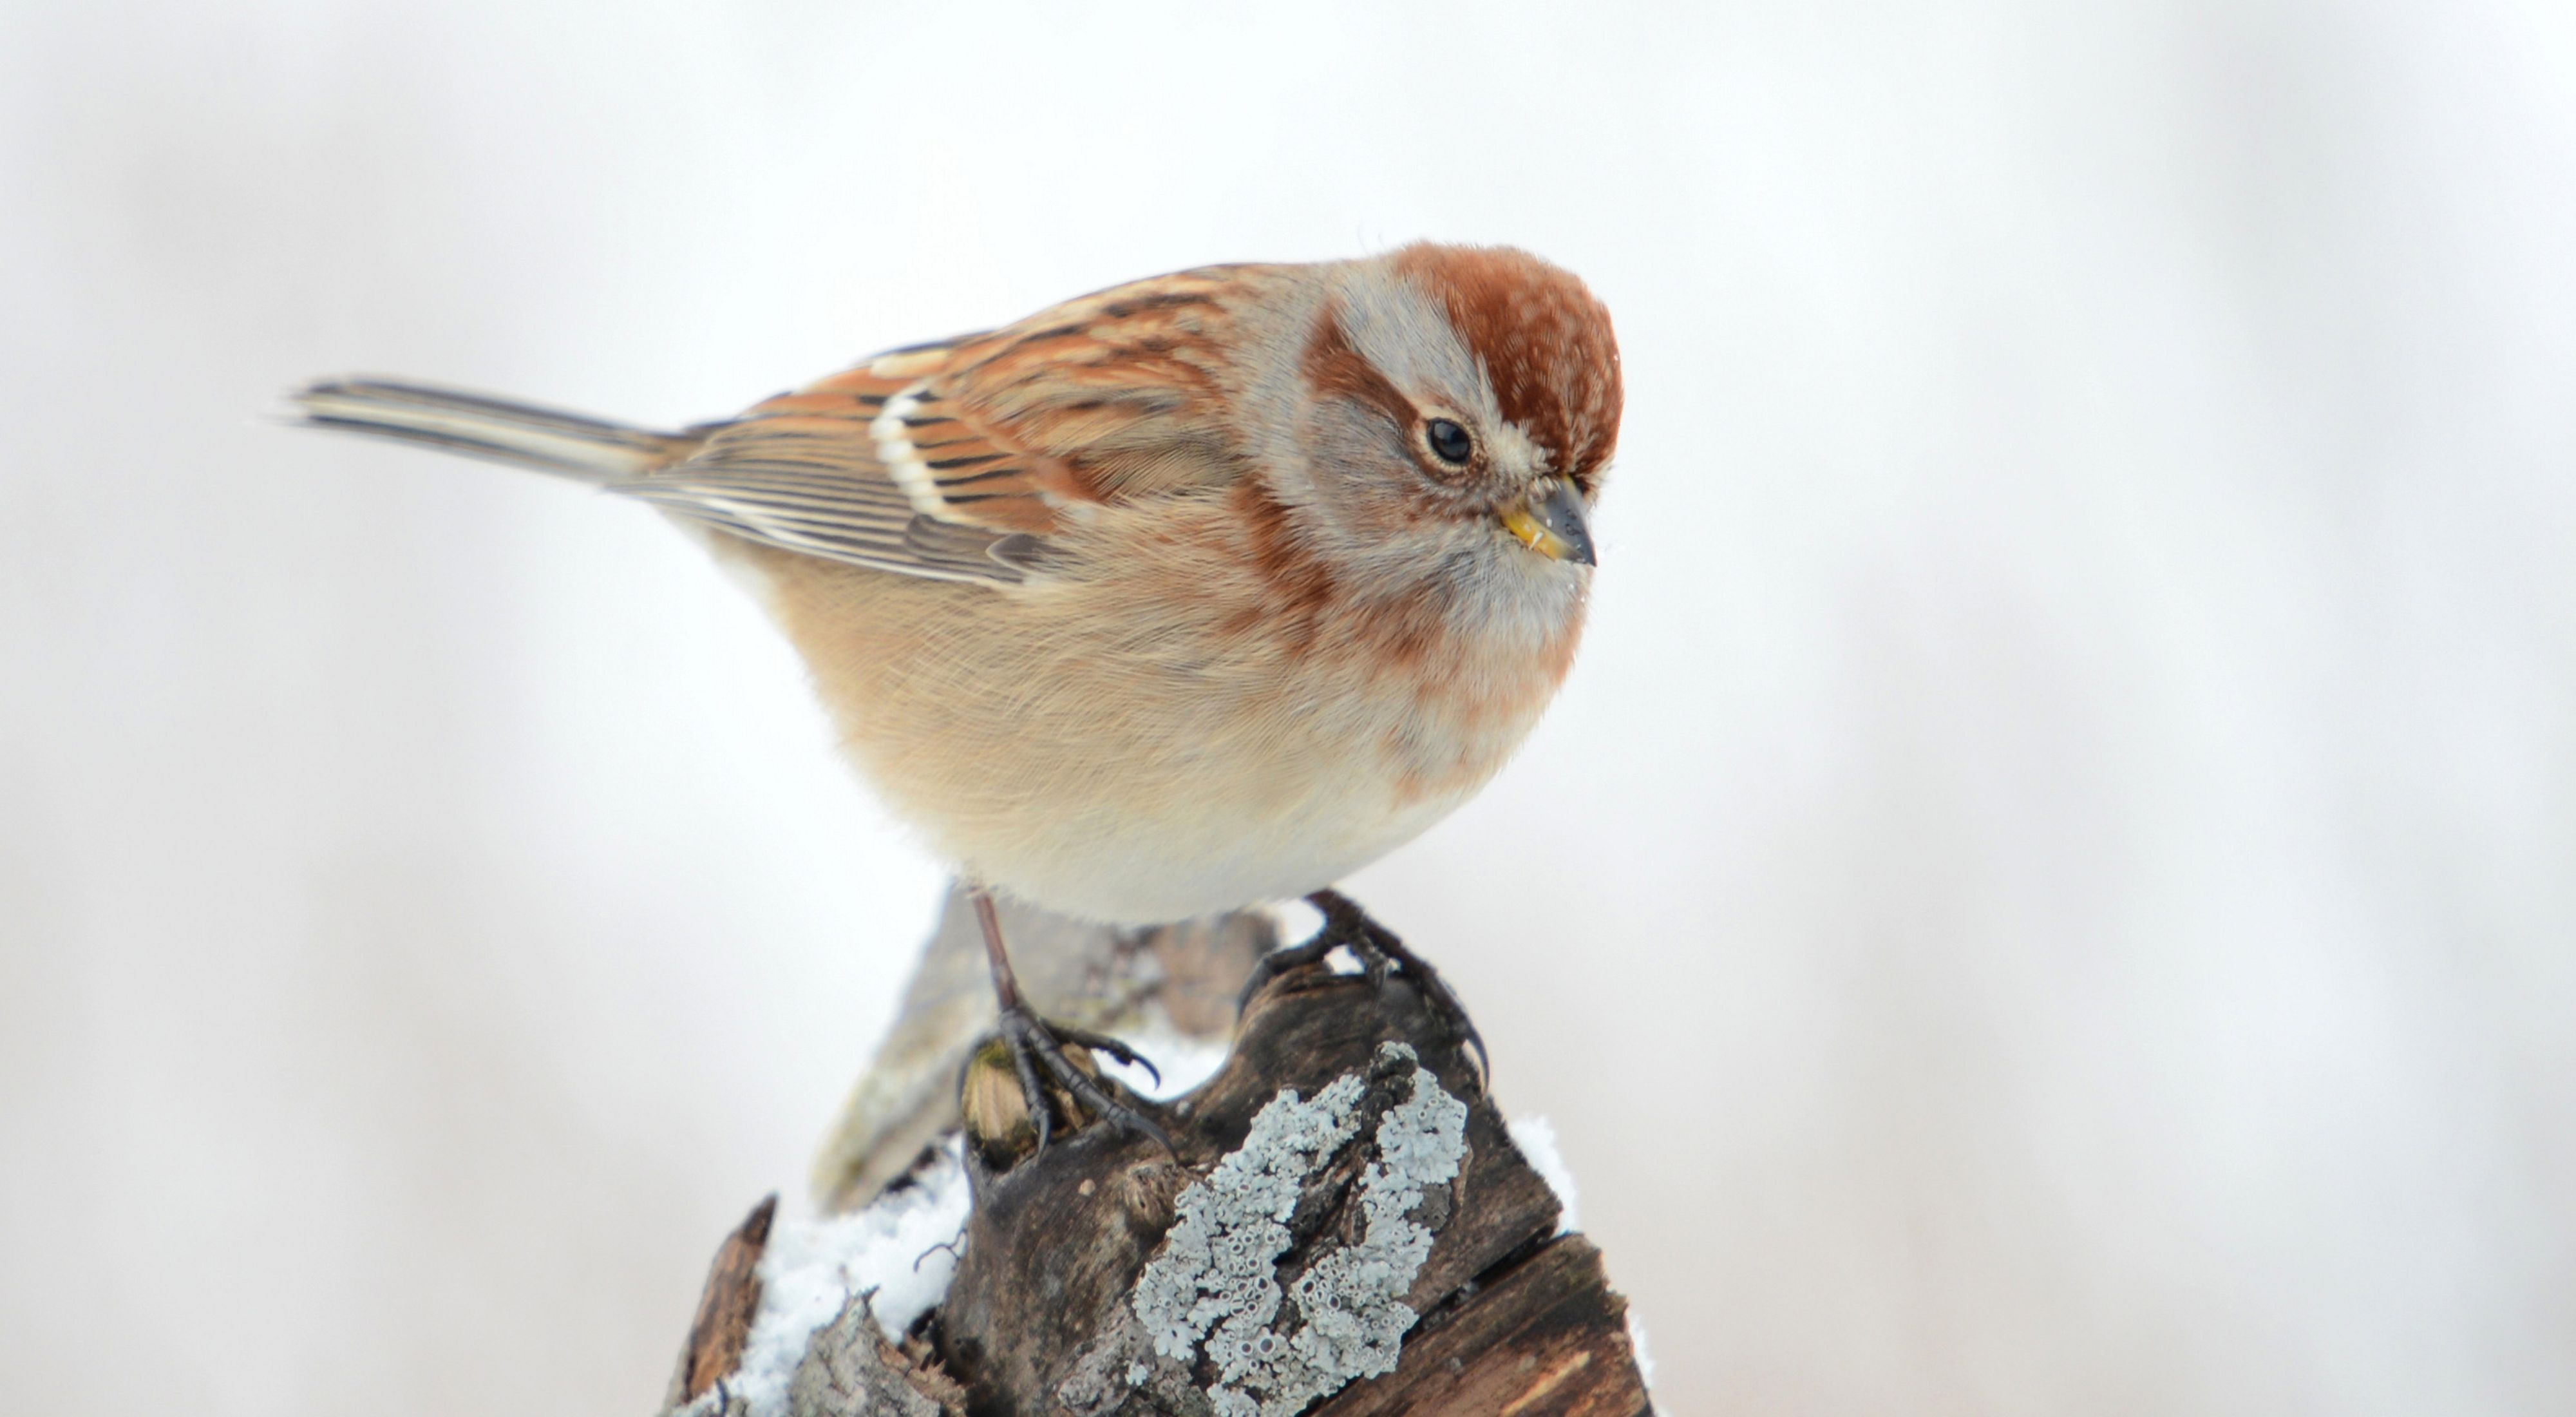 Small sparrow with brown markings perched on a stump.